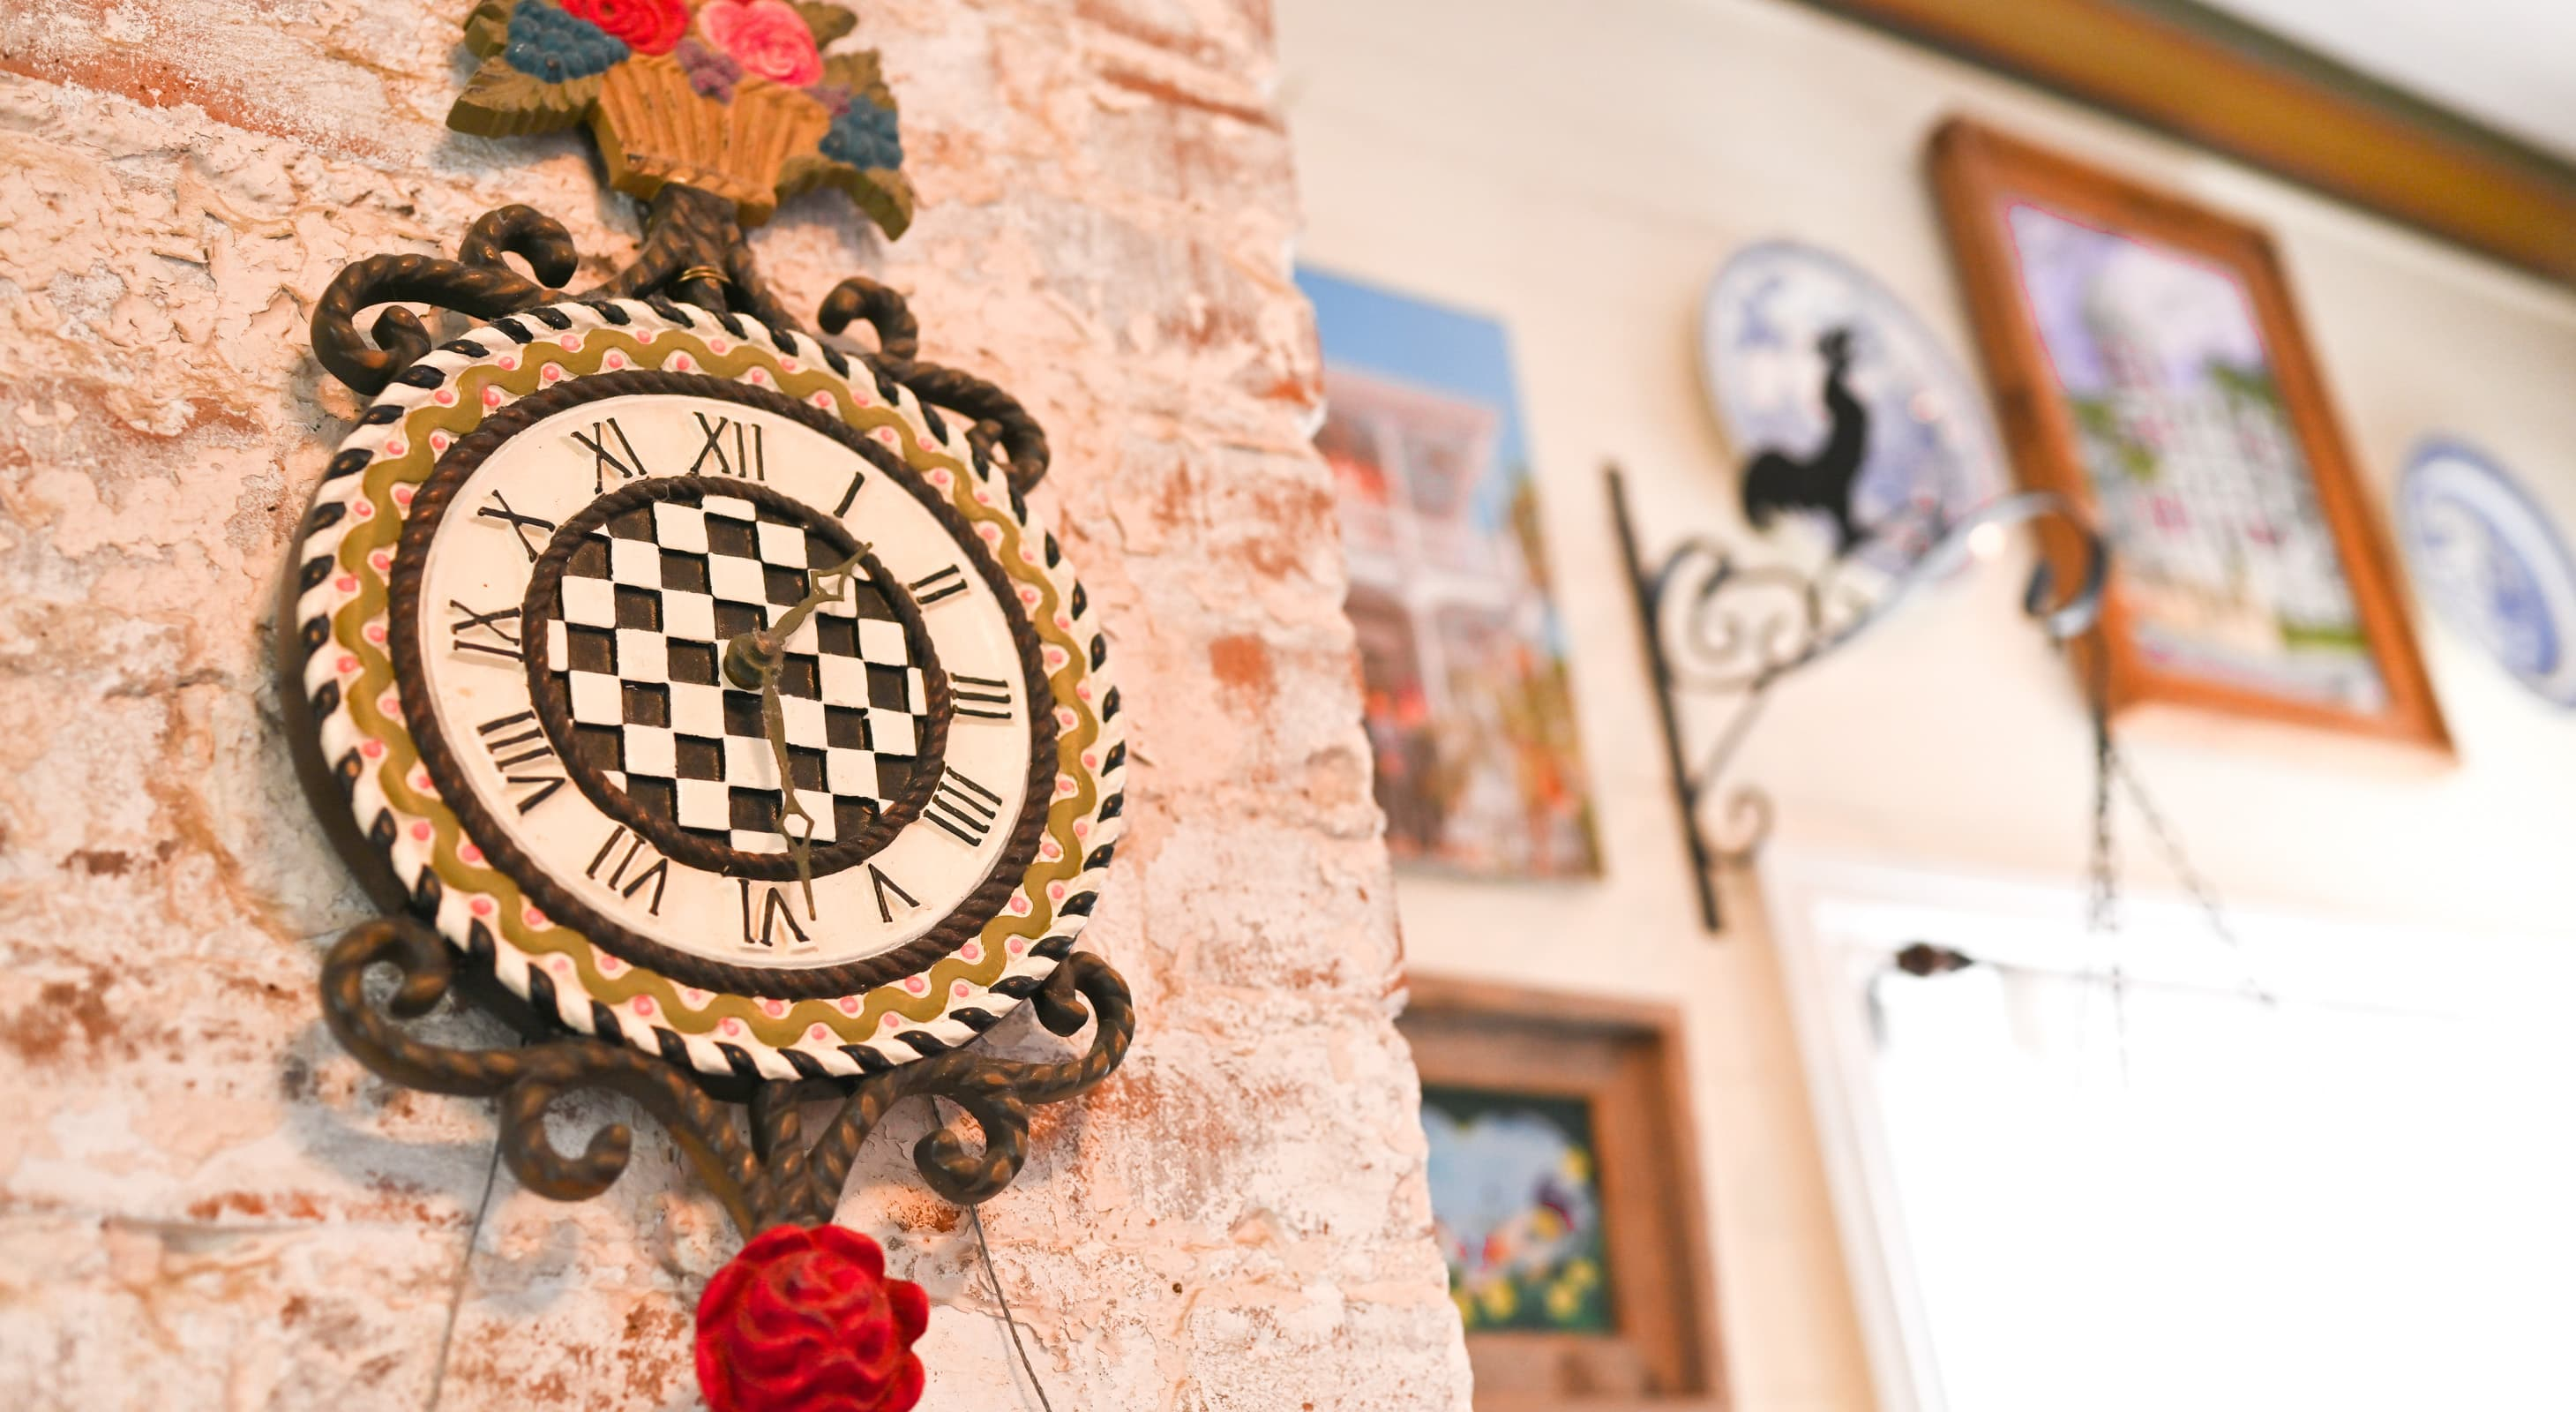 Wall clock with paintings on a wall in the background